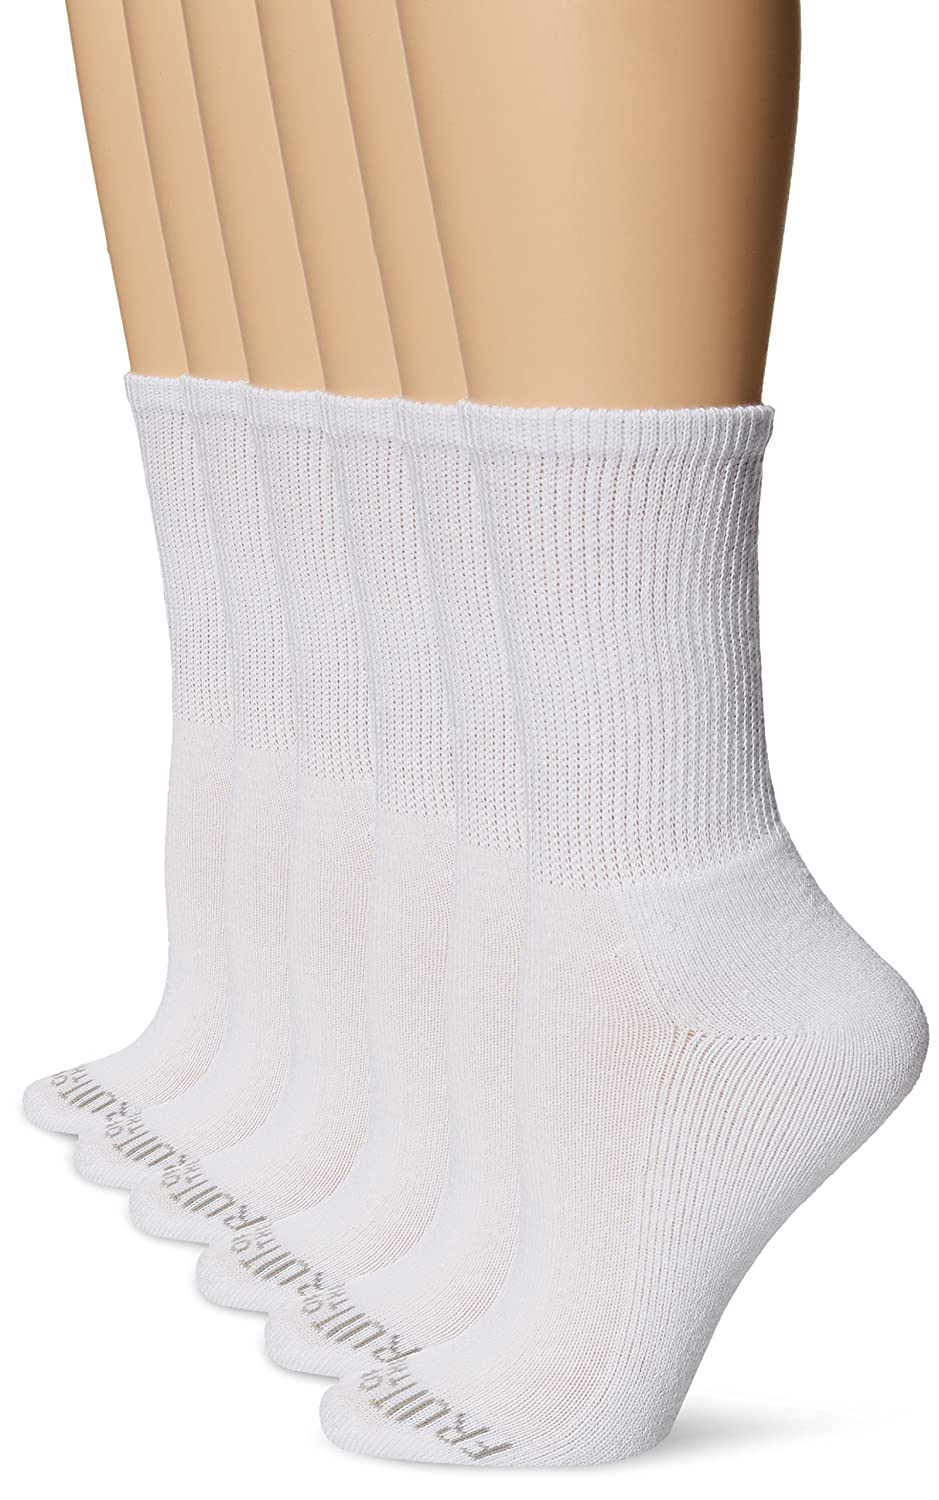 Fruit of the Loom womens 6-pair Crew Socks